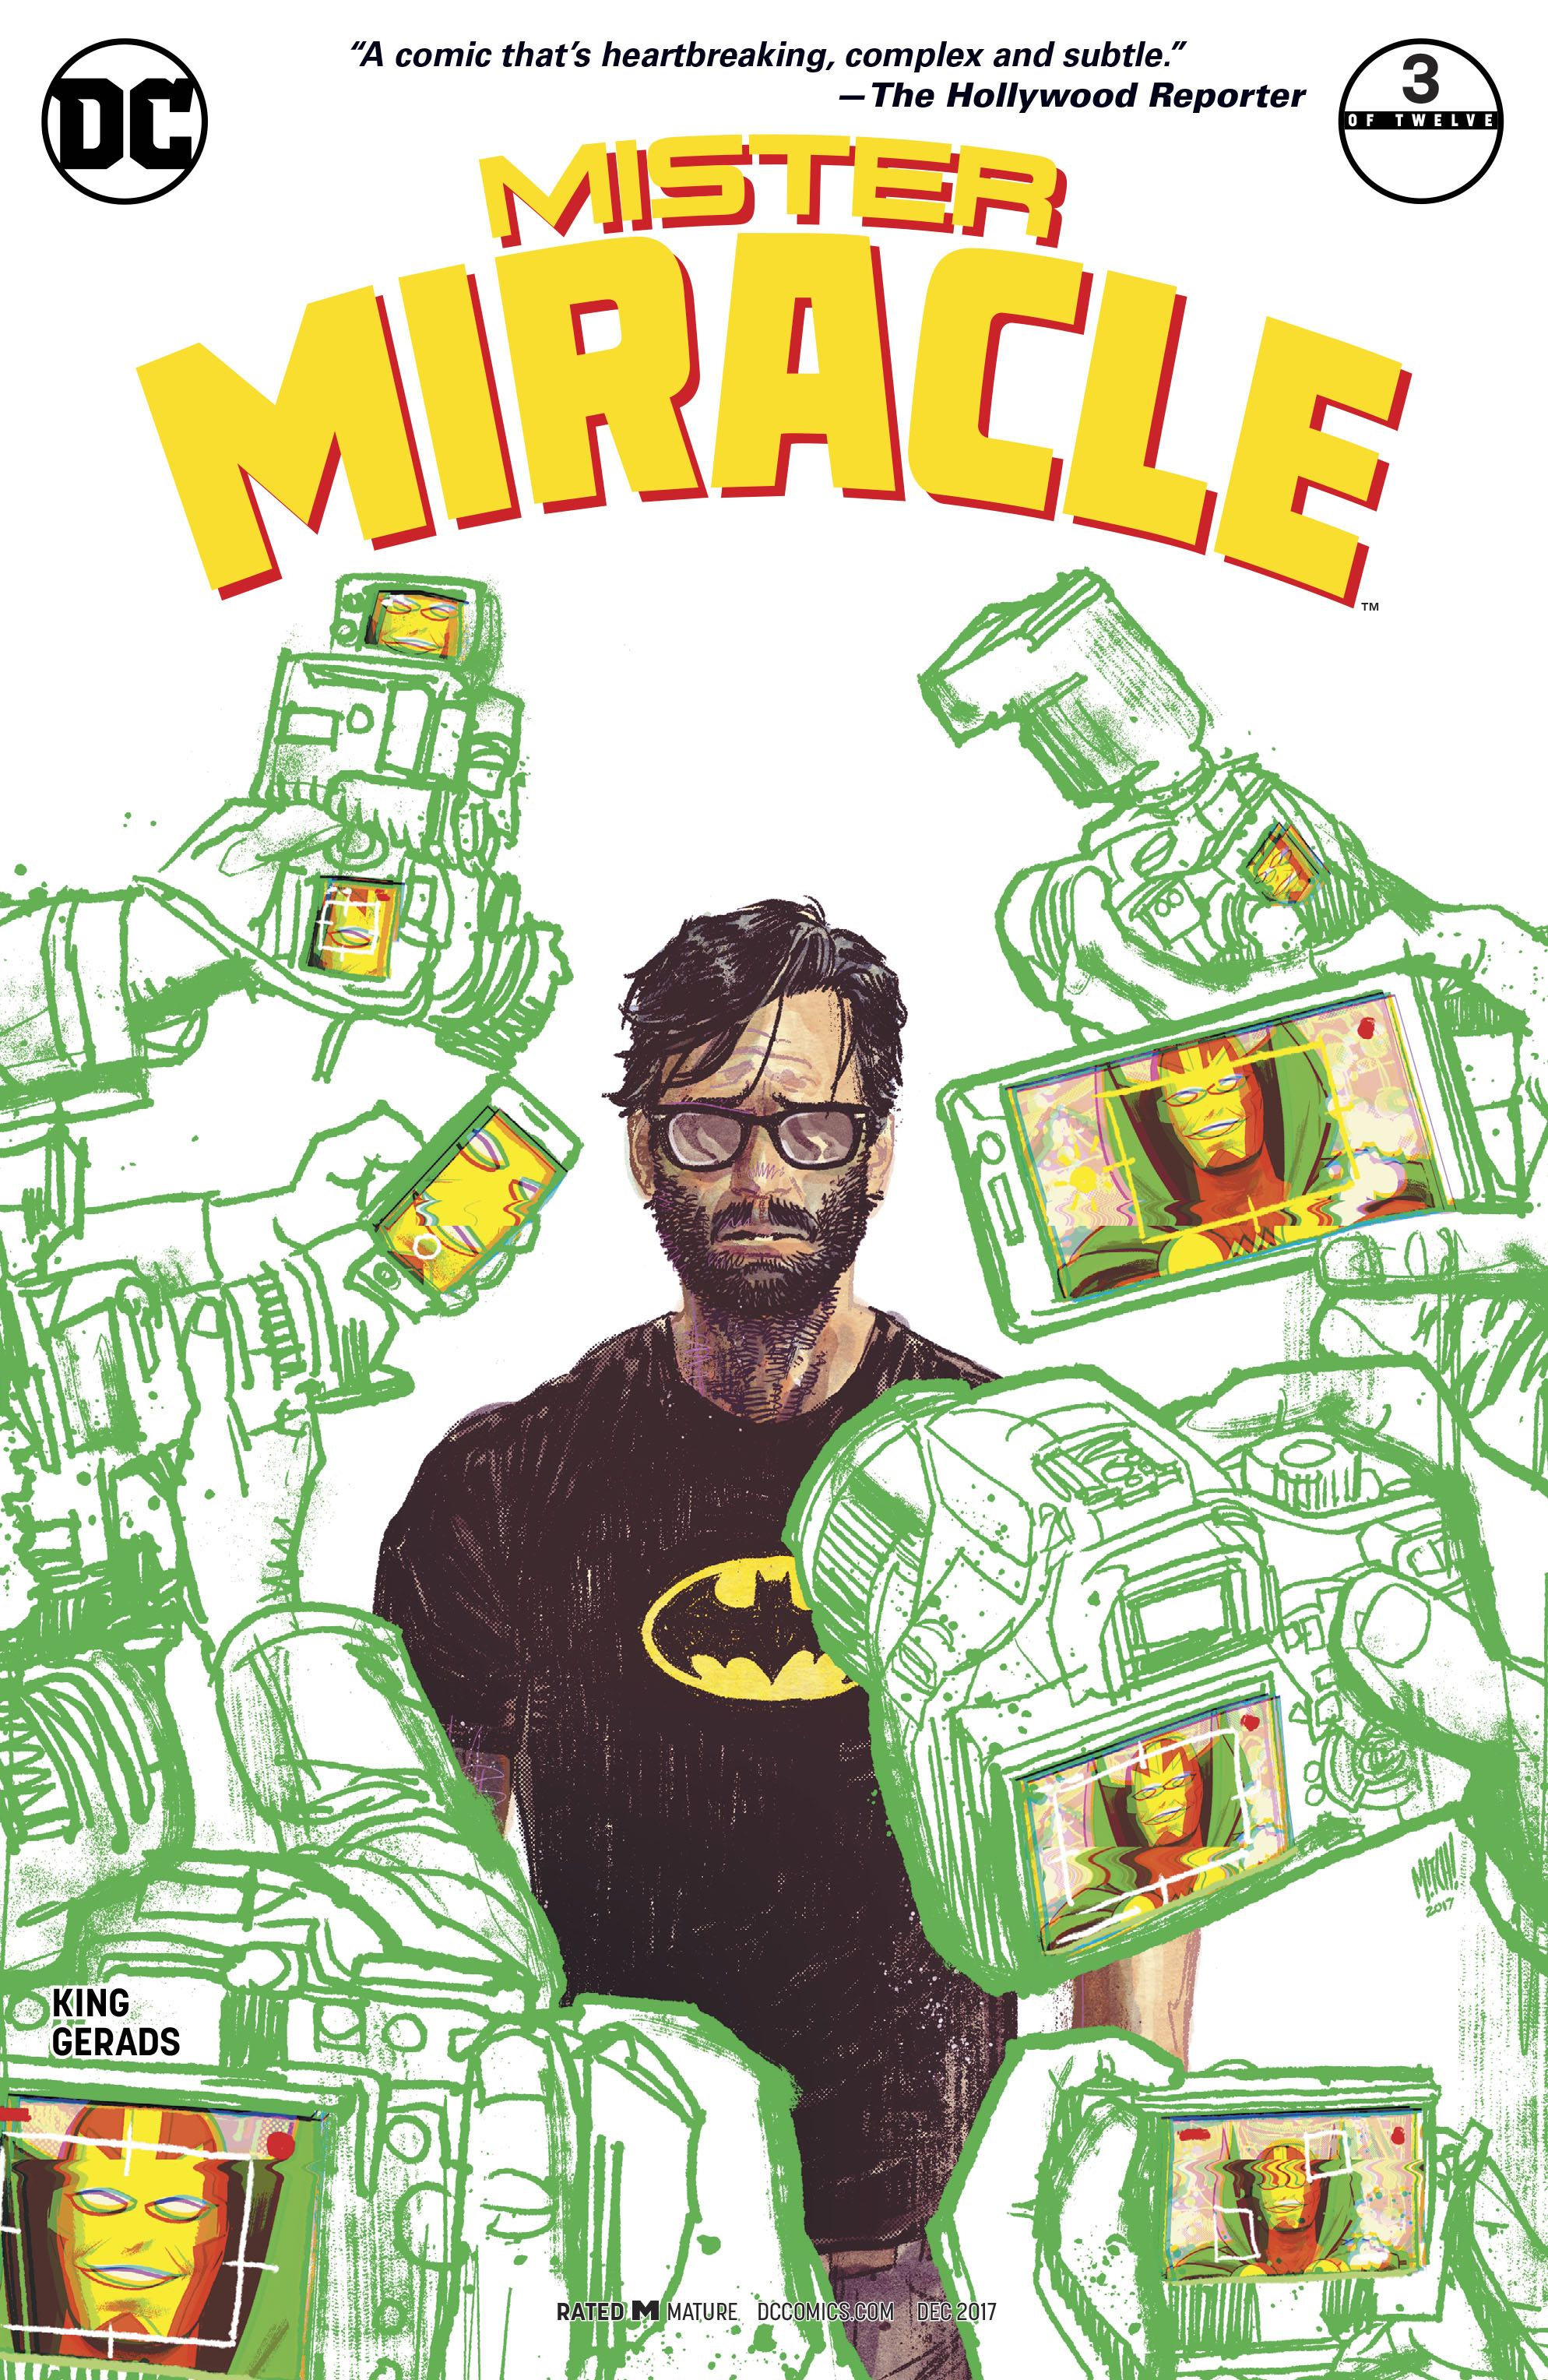 Episode 6 Variant of the Week! - (DC/Vertigo) Mister Miracle #3Cover by Mitch GeradsWritten by Tom KingIllustrated by Mitch GeradsDid the Content Match the Drapes? - YES!